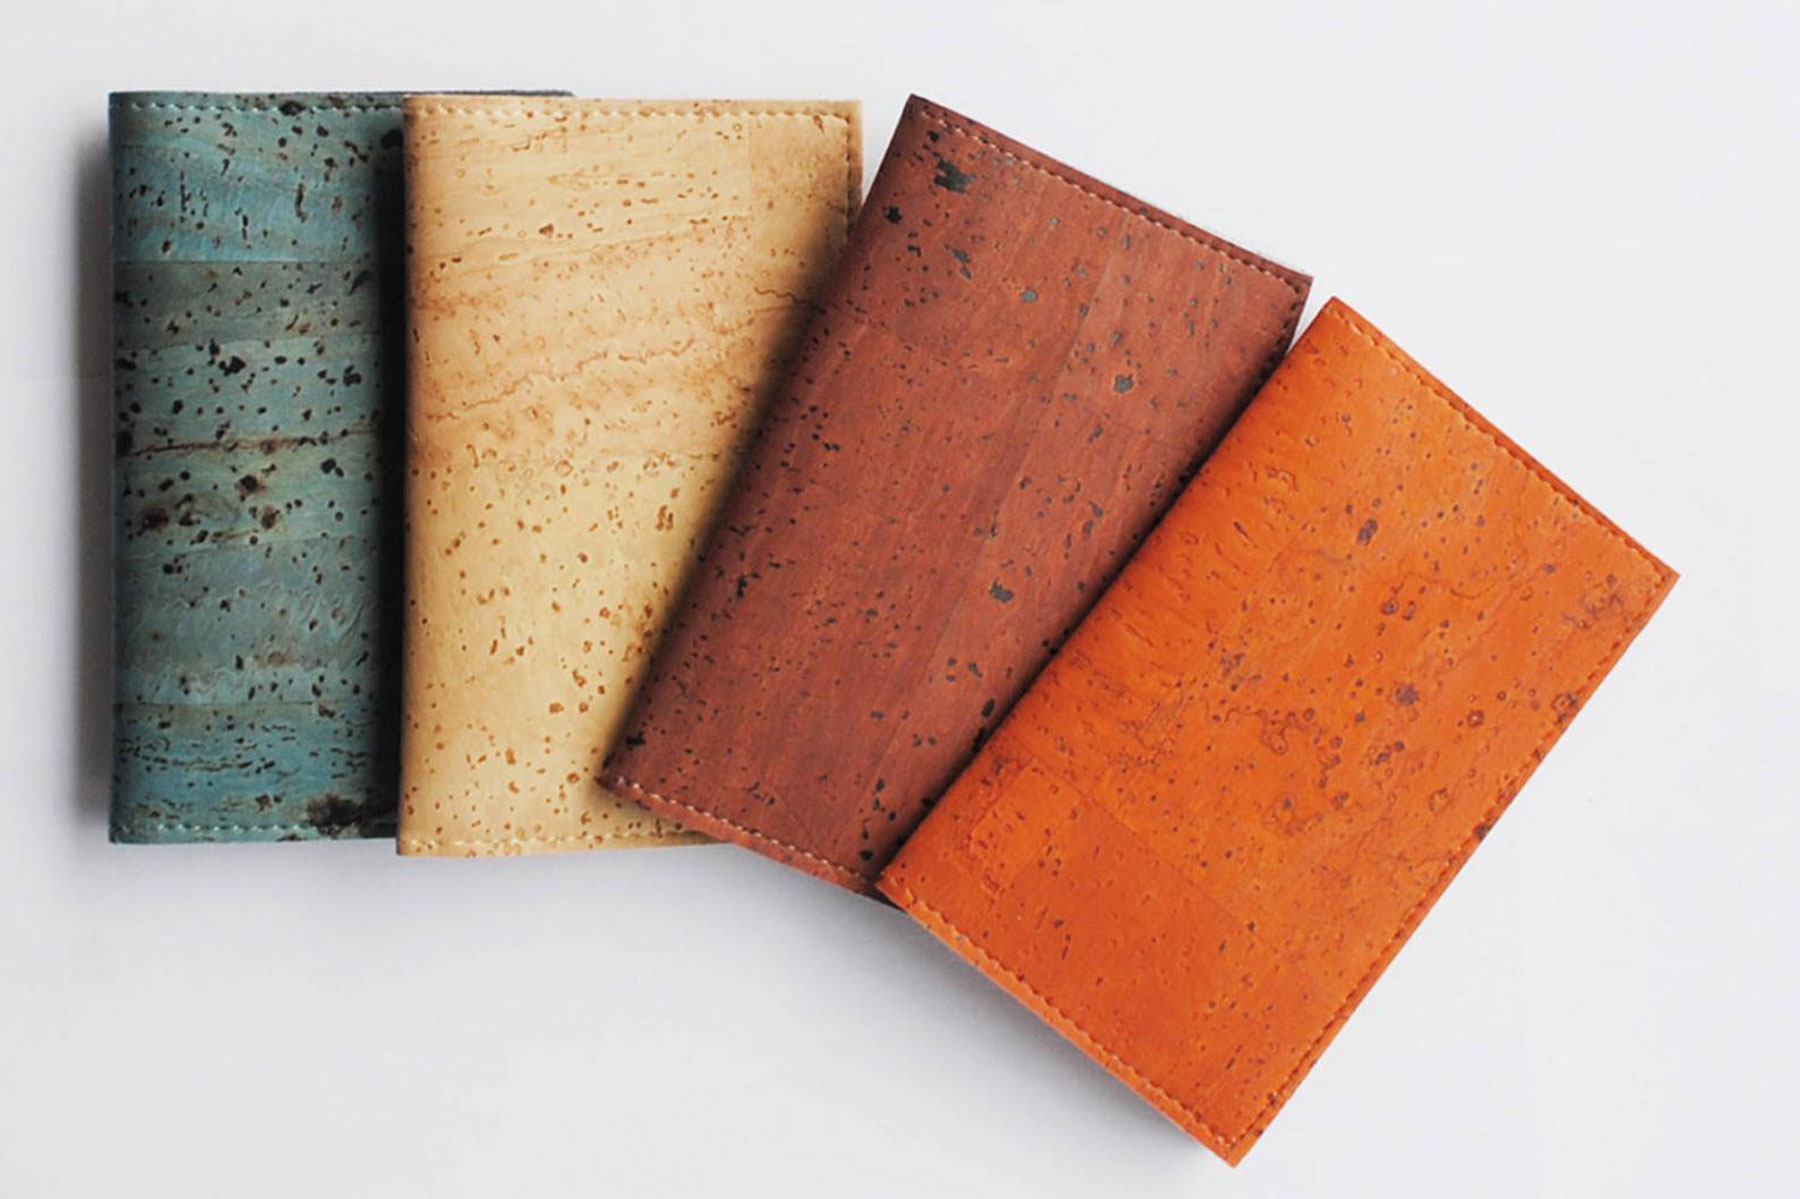 A cardholder is a must have for student IDs, driver's licenses, and more, so why not gift a unique version made from cork?To buy: etsy.com, $25Love a great deal? Sign up for our T+L Recommends newsletter and we'll send you our favorite travel products each week.